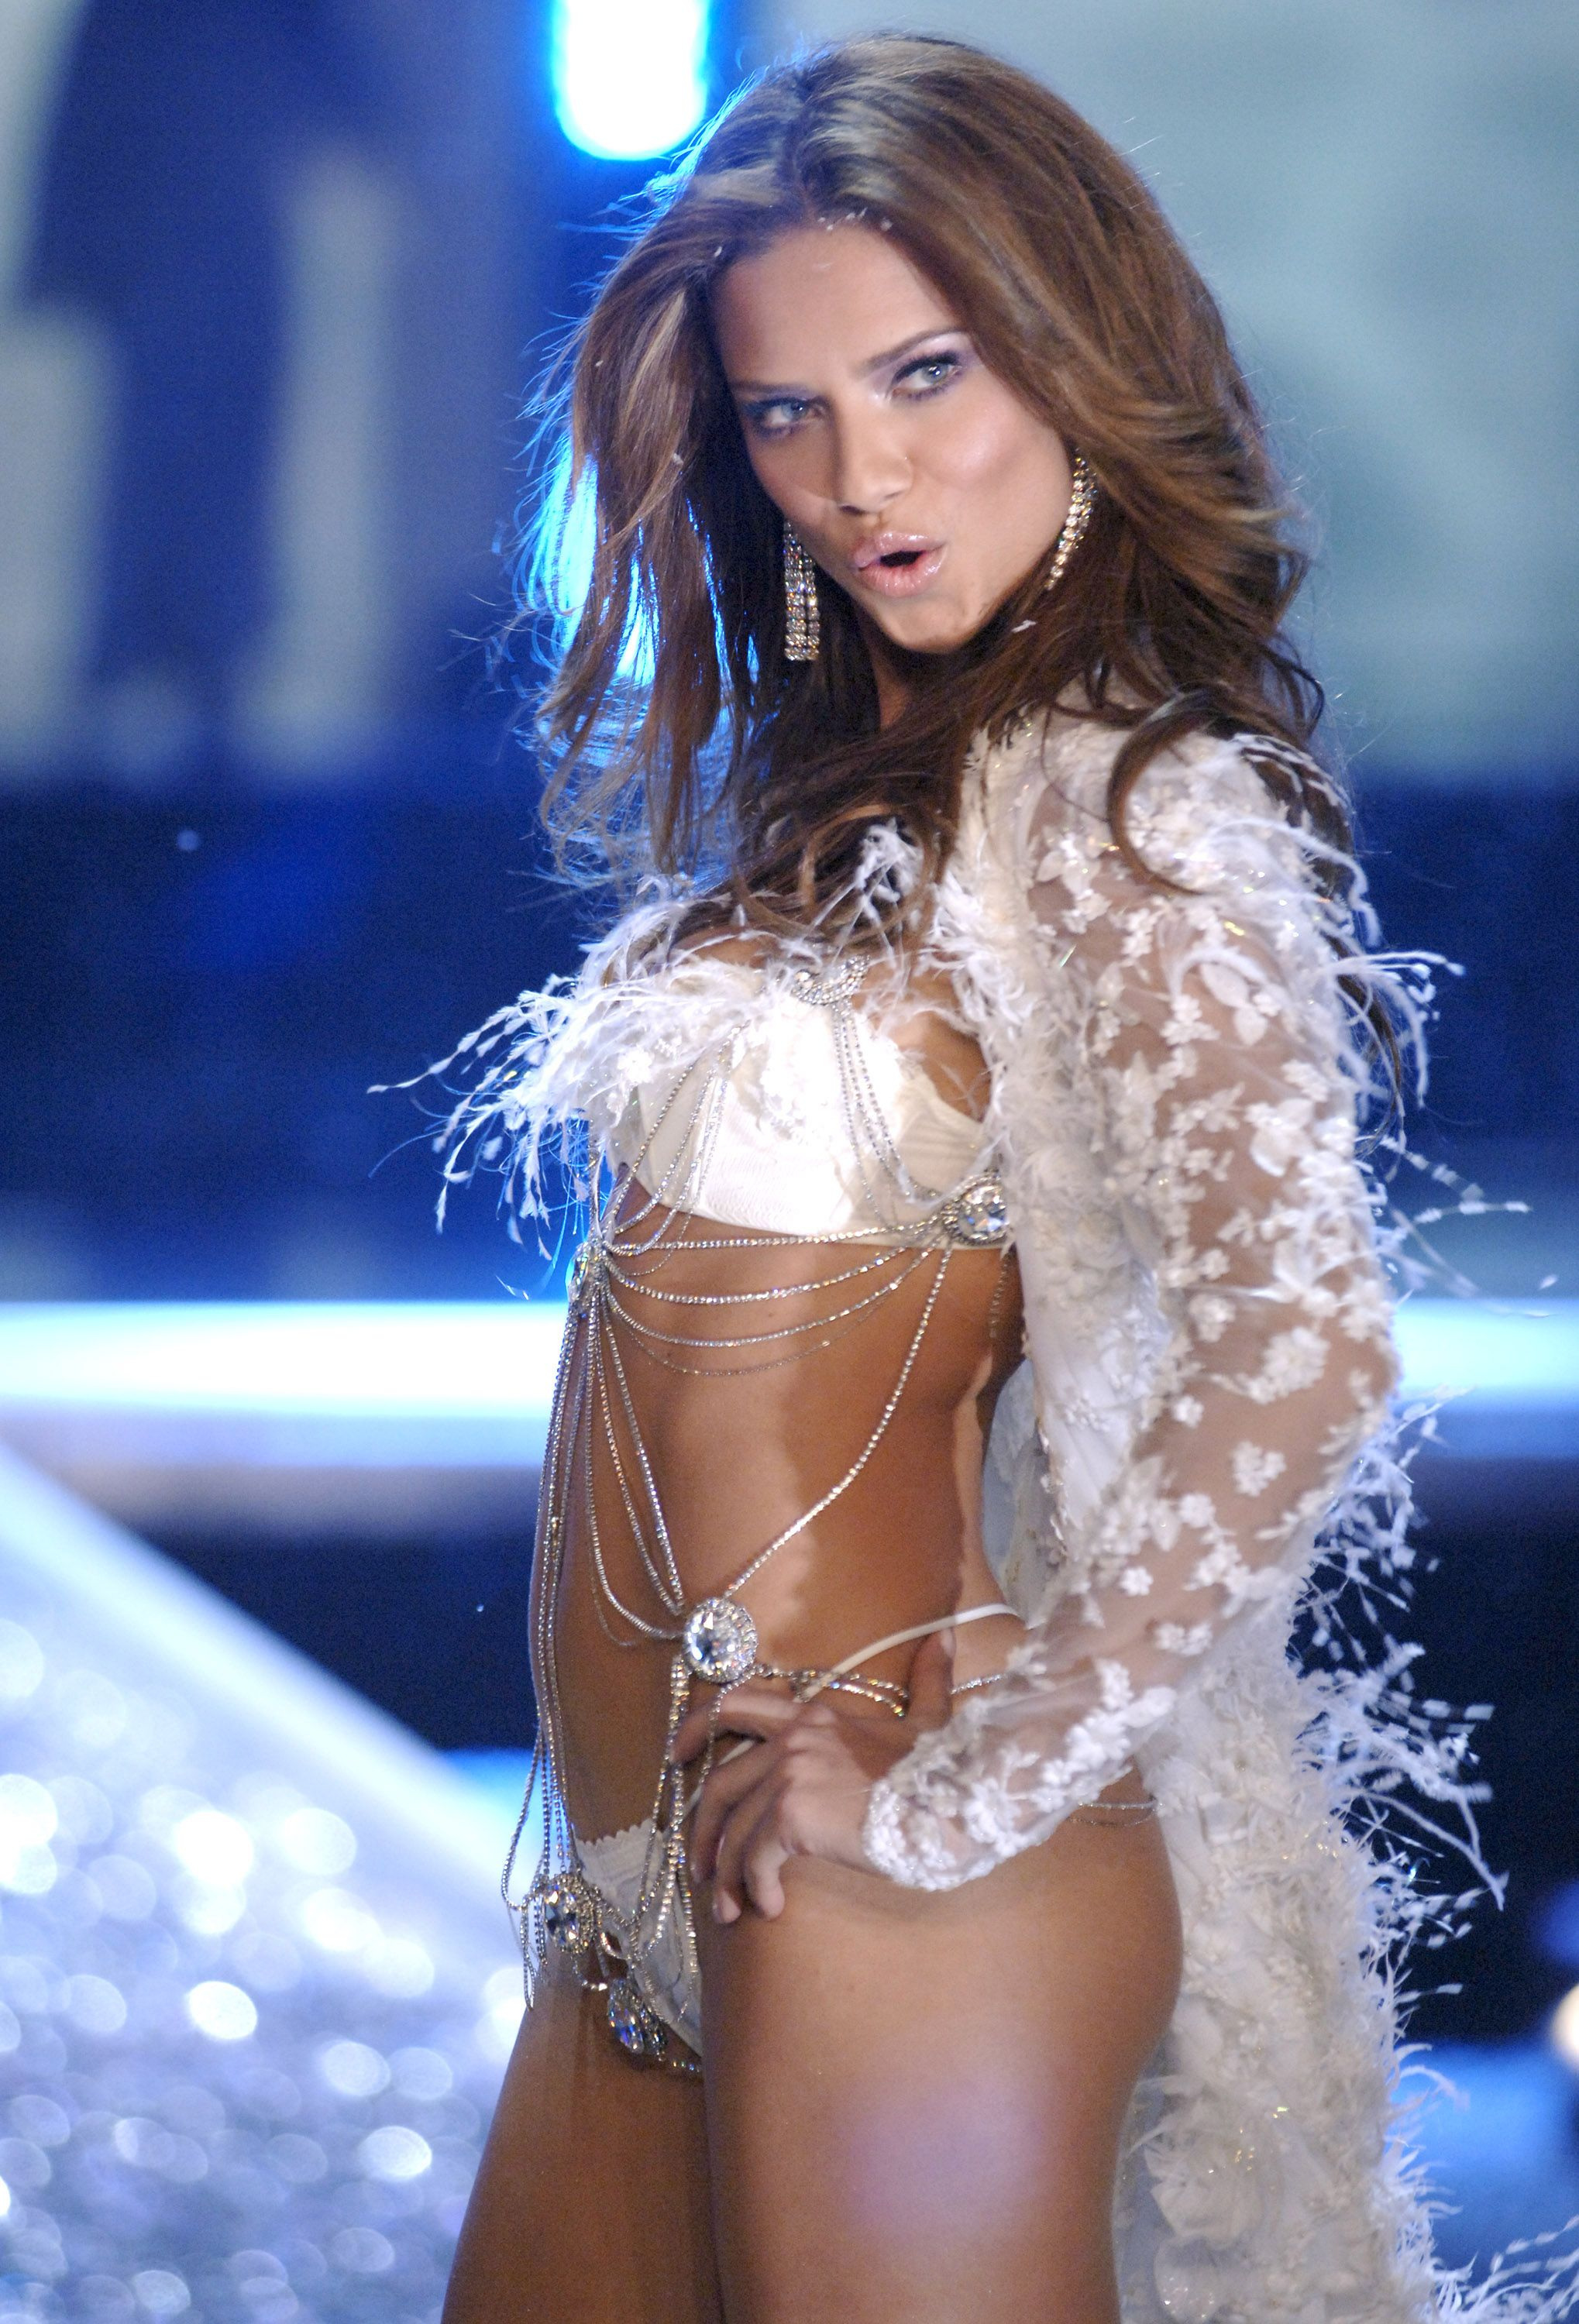 Inez Busty Simple these are adriana lima's sexiest victoria's secret moments